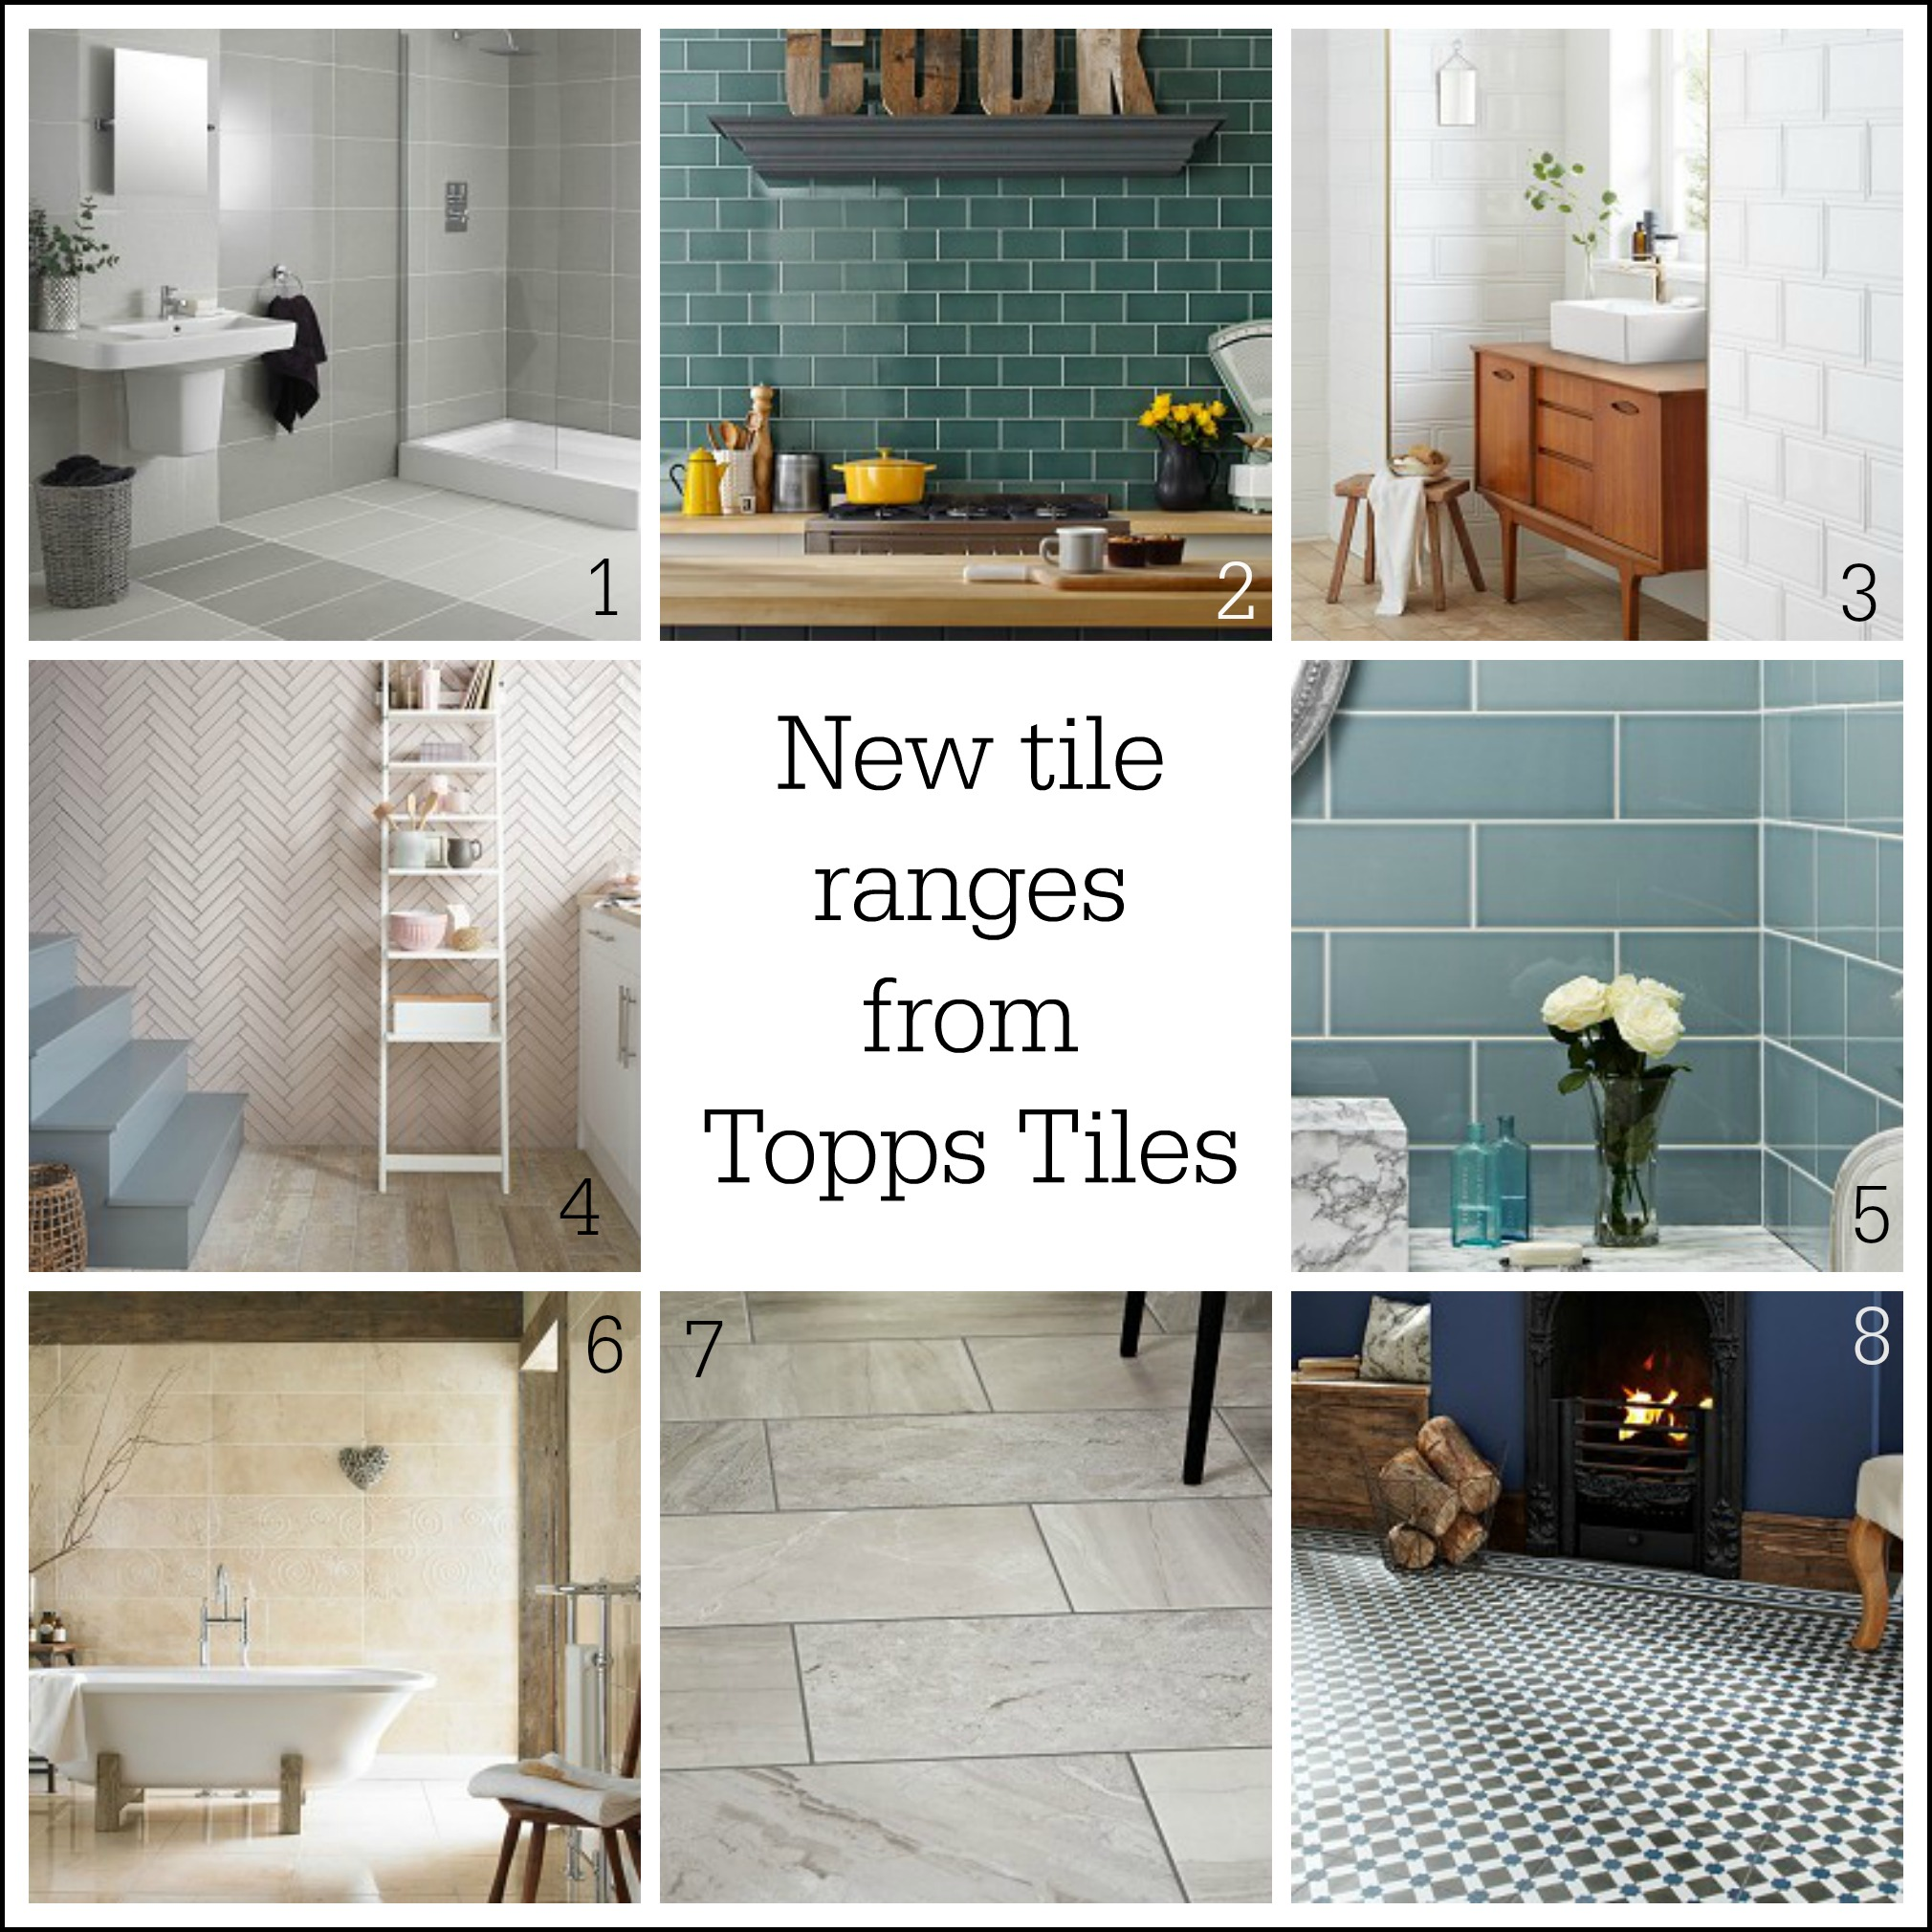 Summer tiling projects tile your floor or wall for less fresh fresh design home summer tiling projects dailygadgetfo Gallery